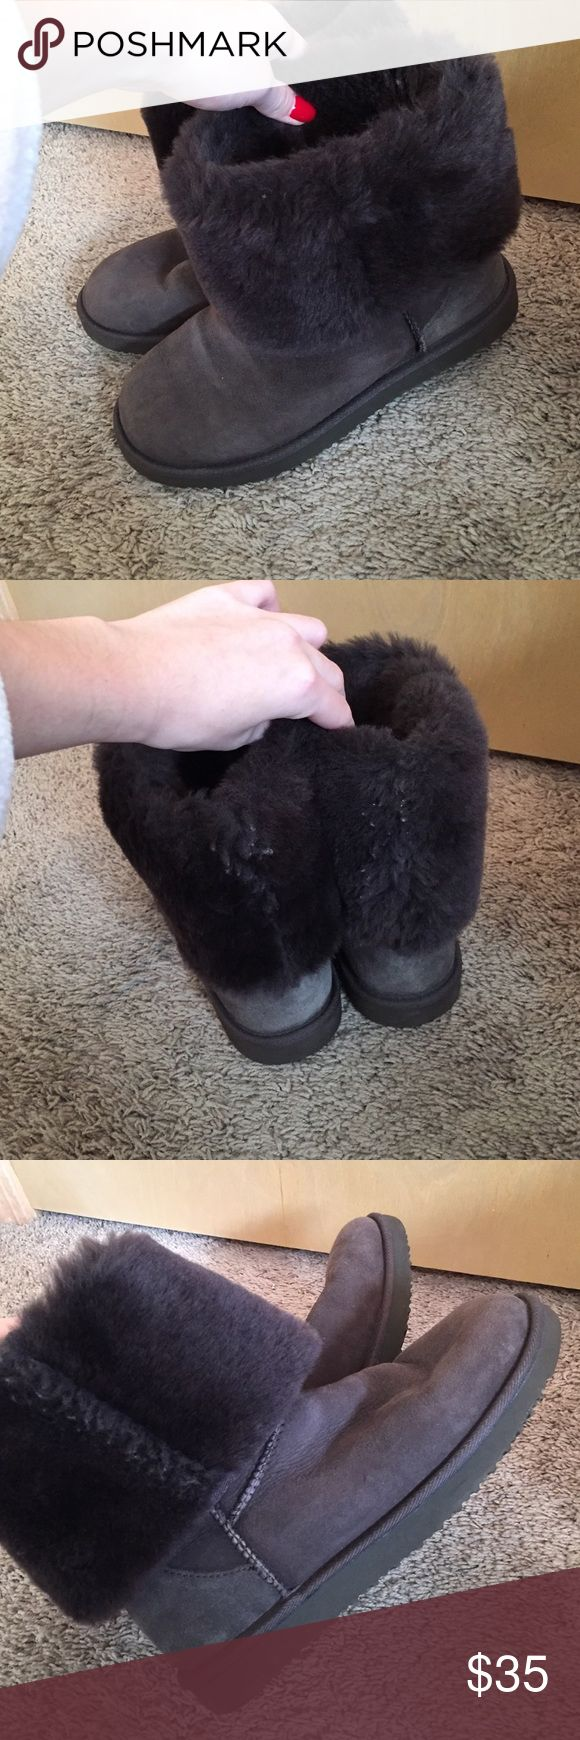 """Boots (8) Boots (8)- not sure which brand but bought at Costco. Closest thing to real uggs feel// warmth. Only worn a couple times- they are """"tall sized"""" but I roll them down. Shoes"""